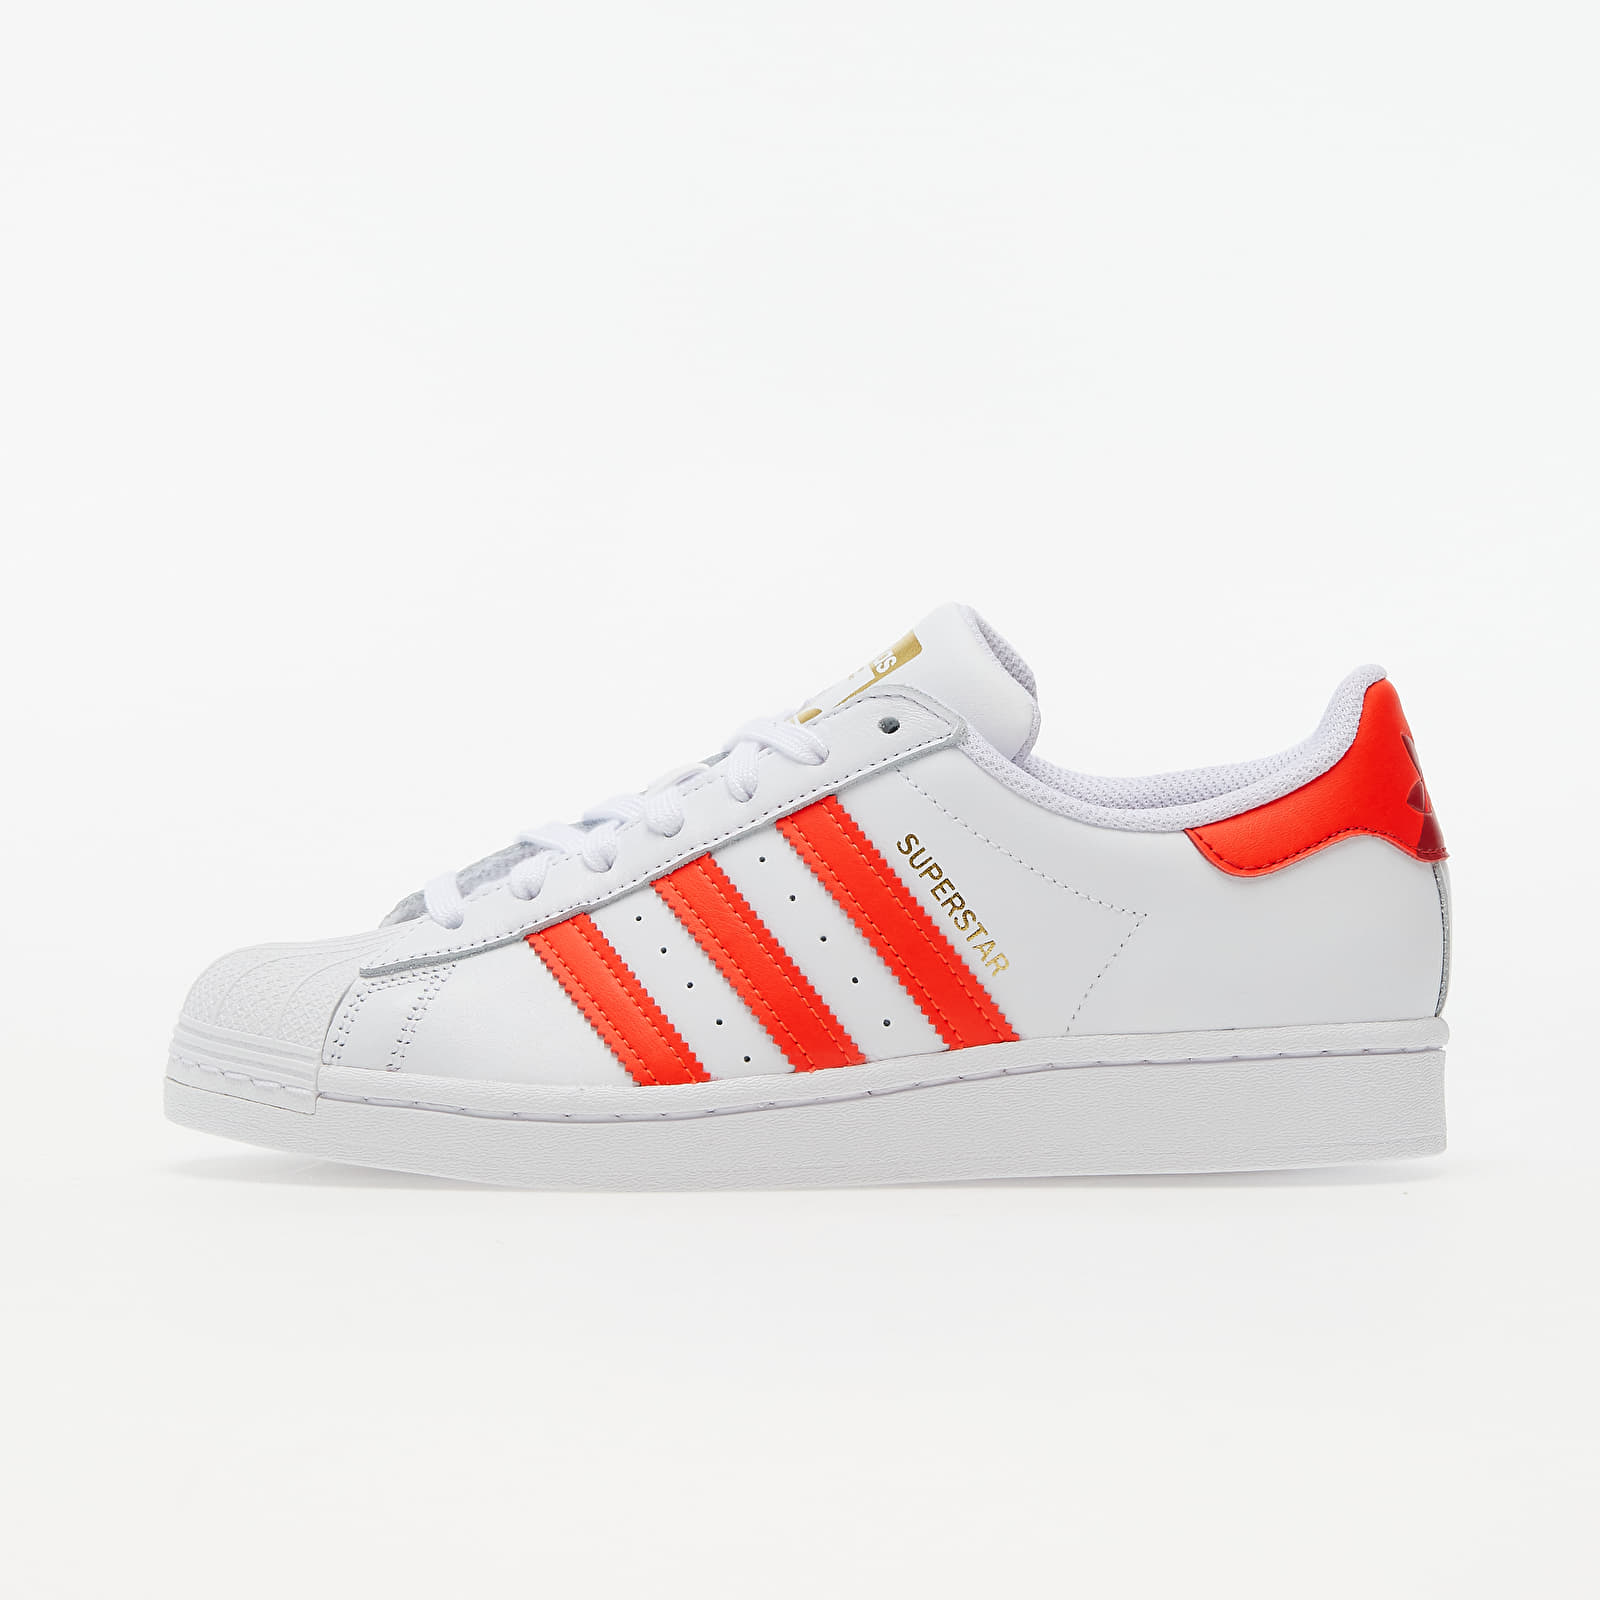 adidas Superstar W Ftw White/ Solar Red/ Scarlet EUR 38